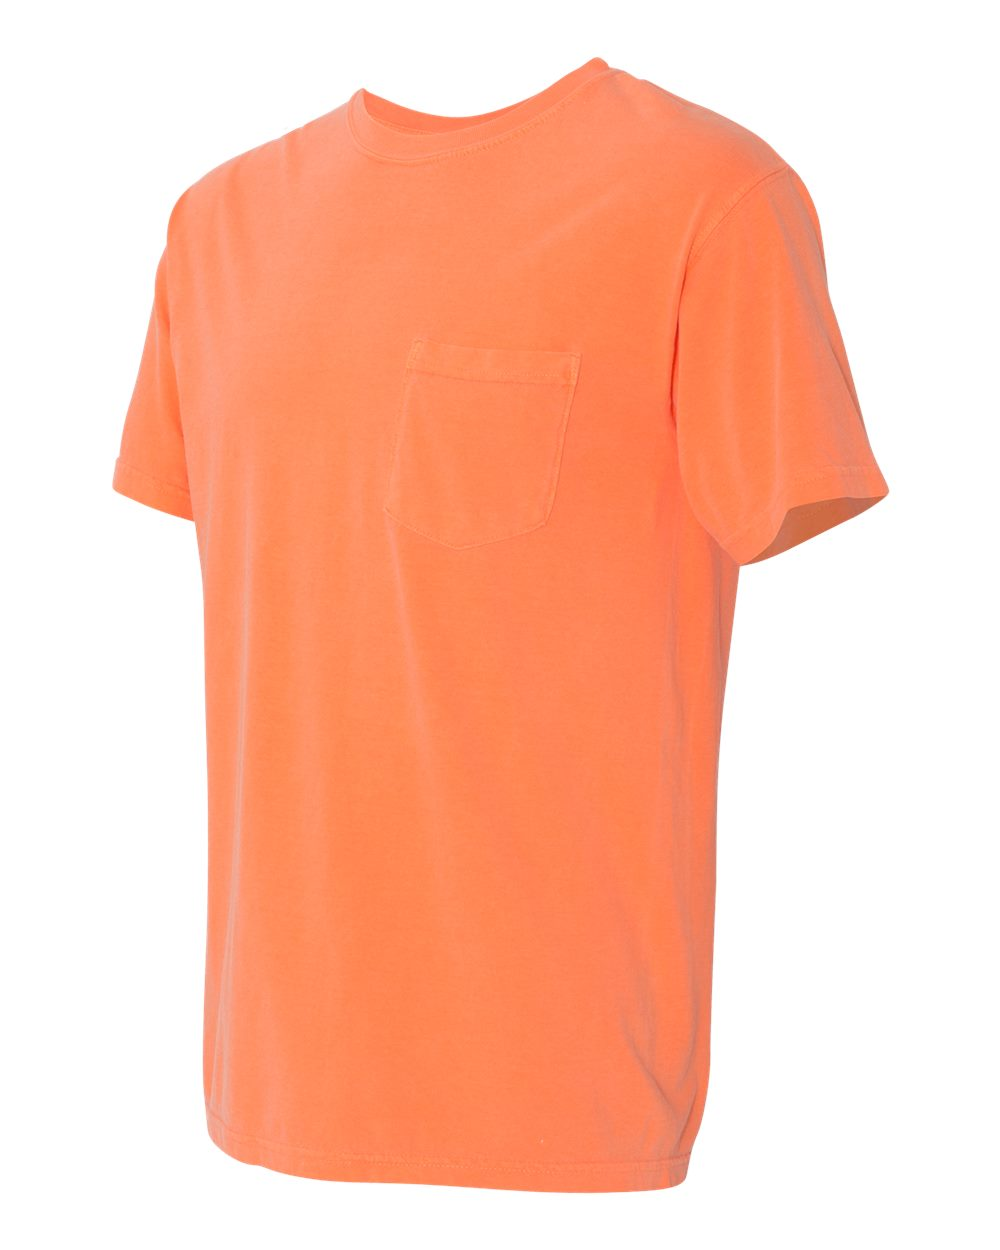 Comfort-Colors-Men-039-s-6-1-oz-Garment-Dyed-Pocket-T-Shirt-6030CC-S-3XL thumbnail 57